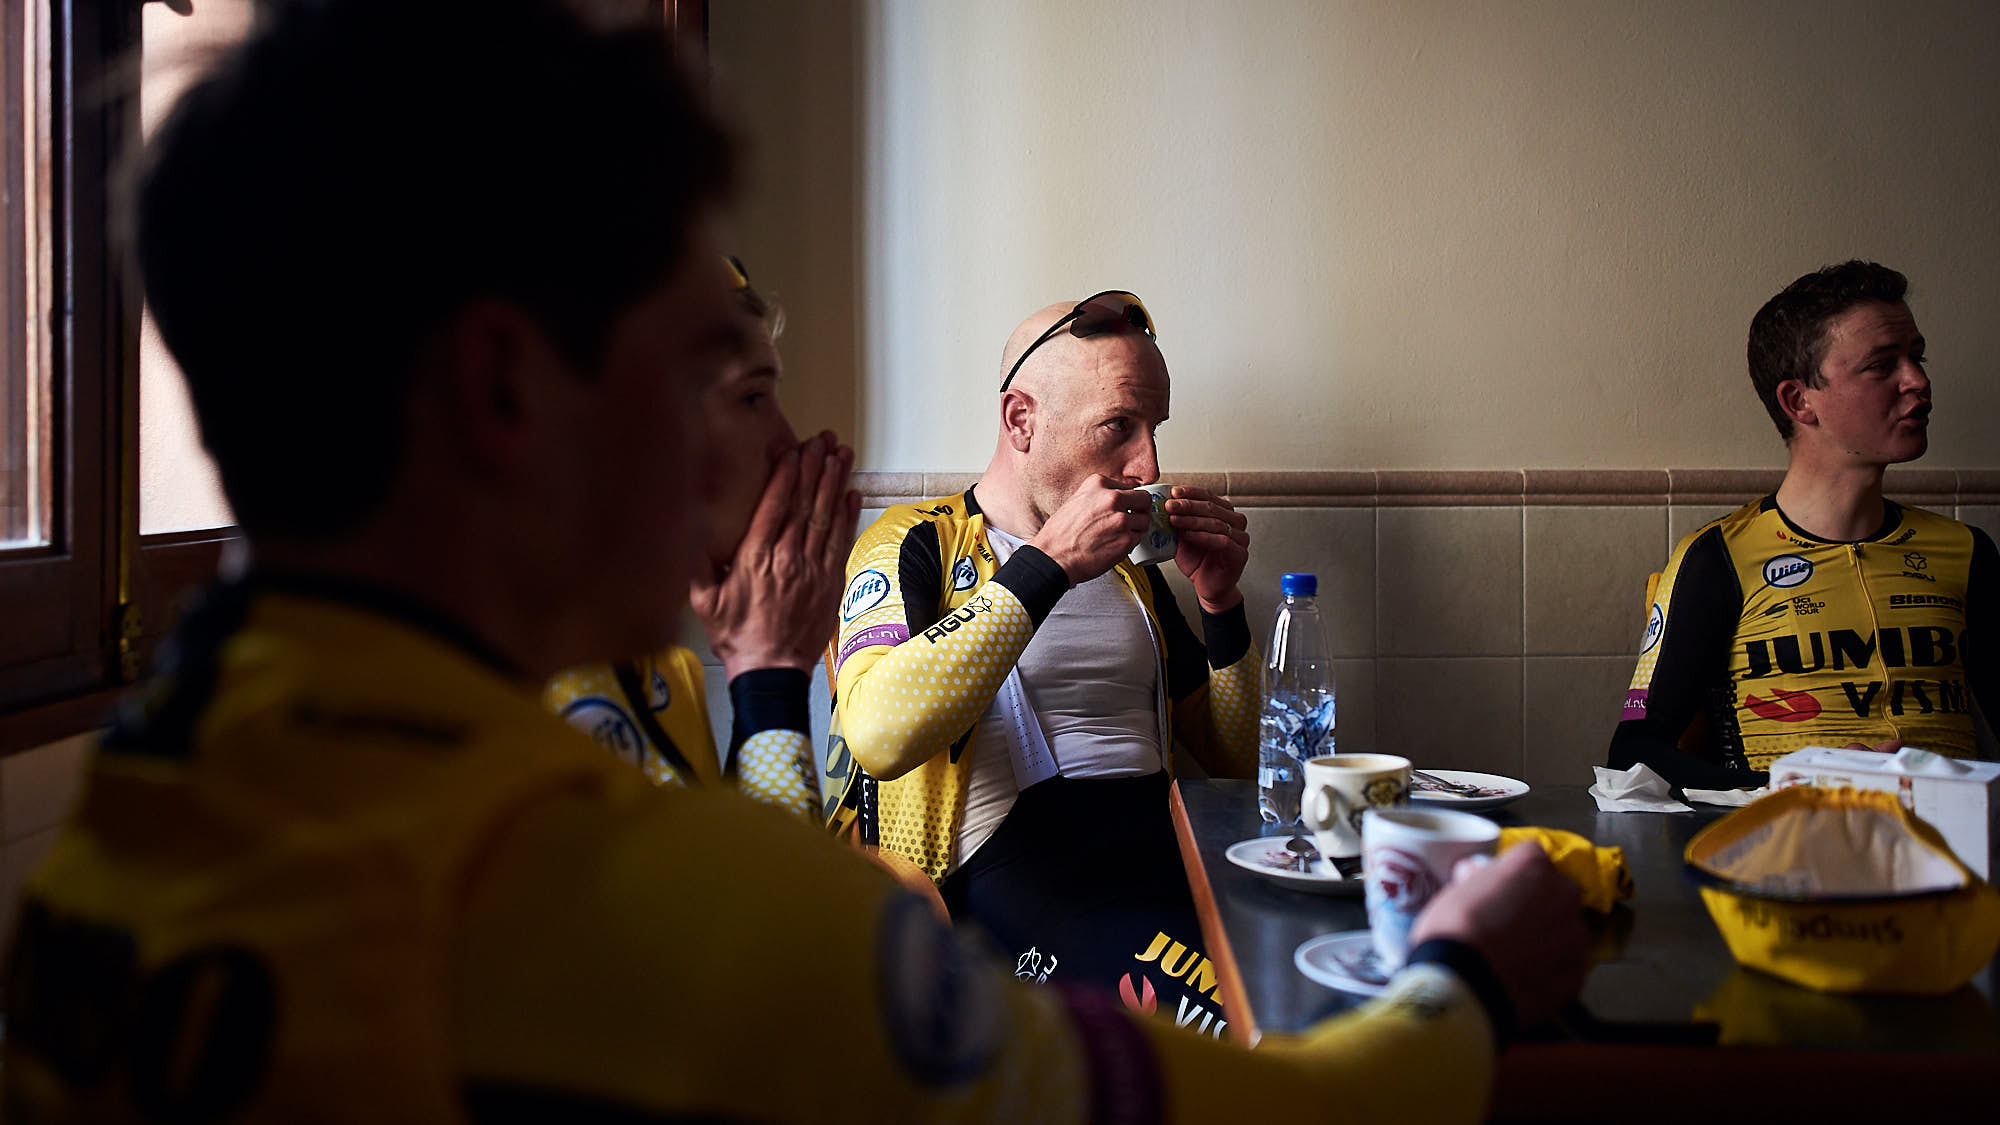 Cyclist Jos van Emden enjoying a coffee